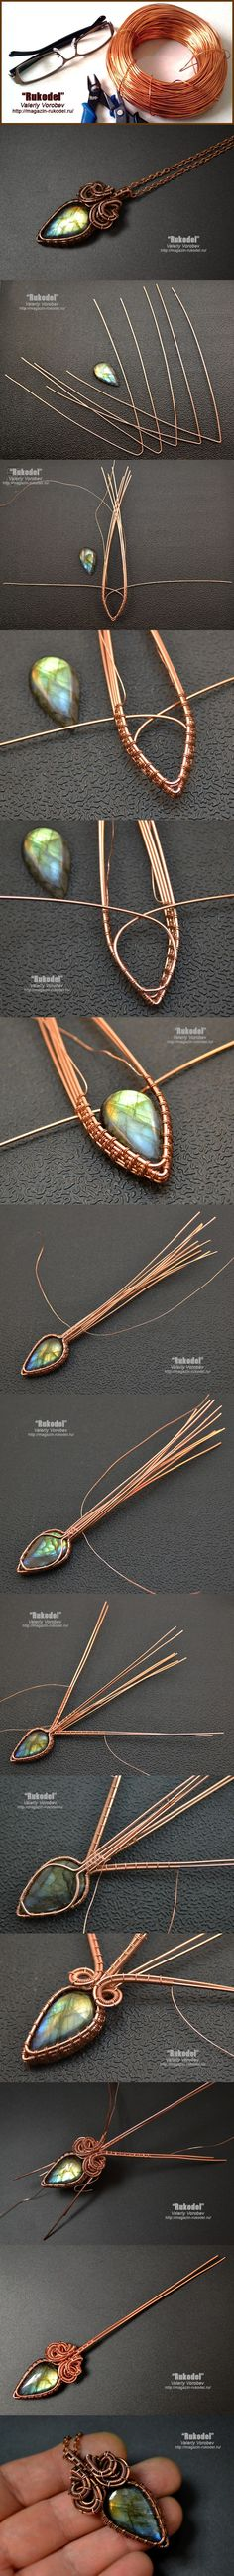 Copper wire-wrapped teardrop labradorite pendant